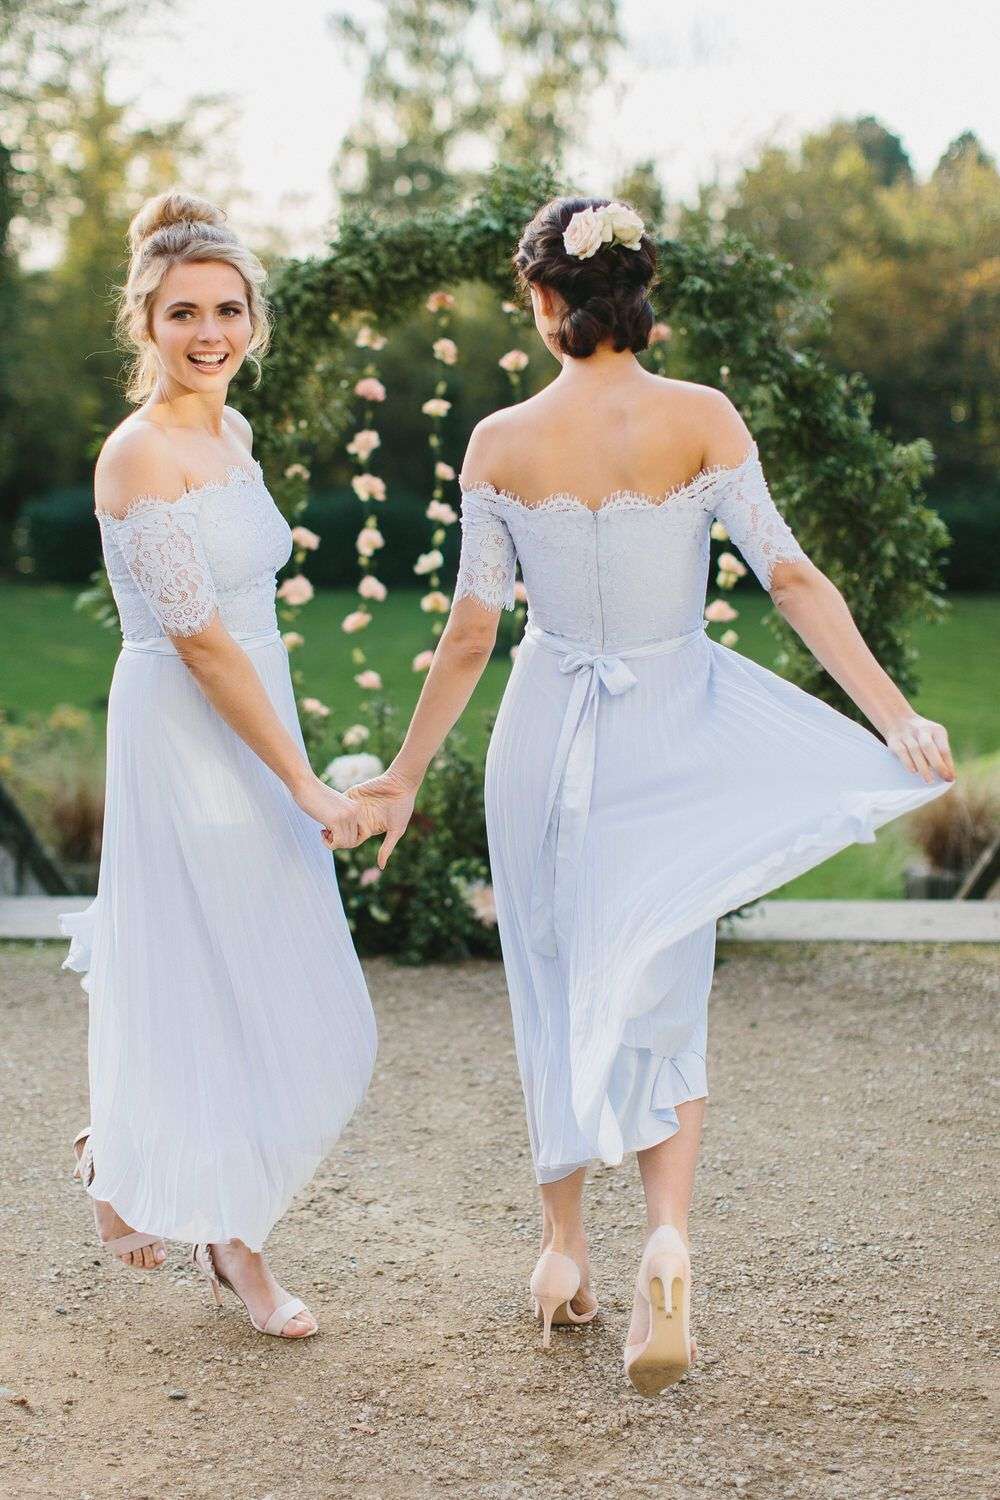 Five ways to use florals for your wedding day including bridesmaids